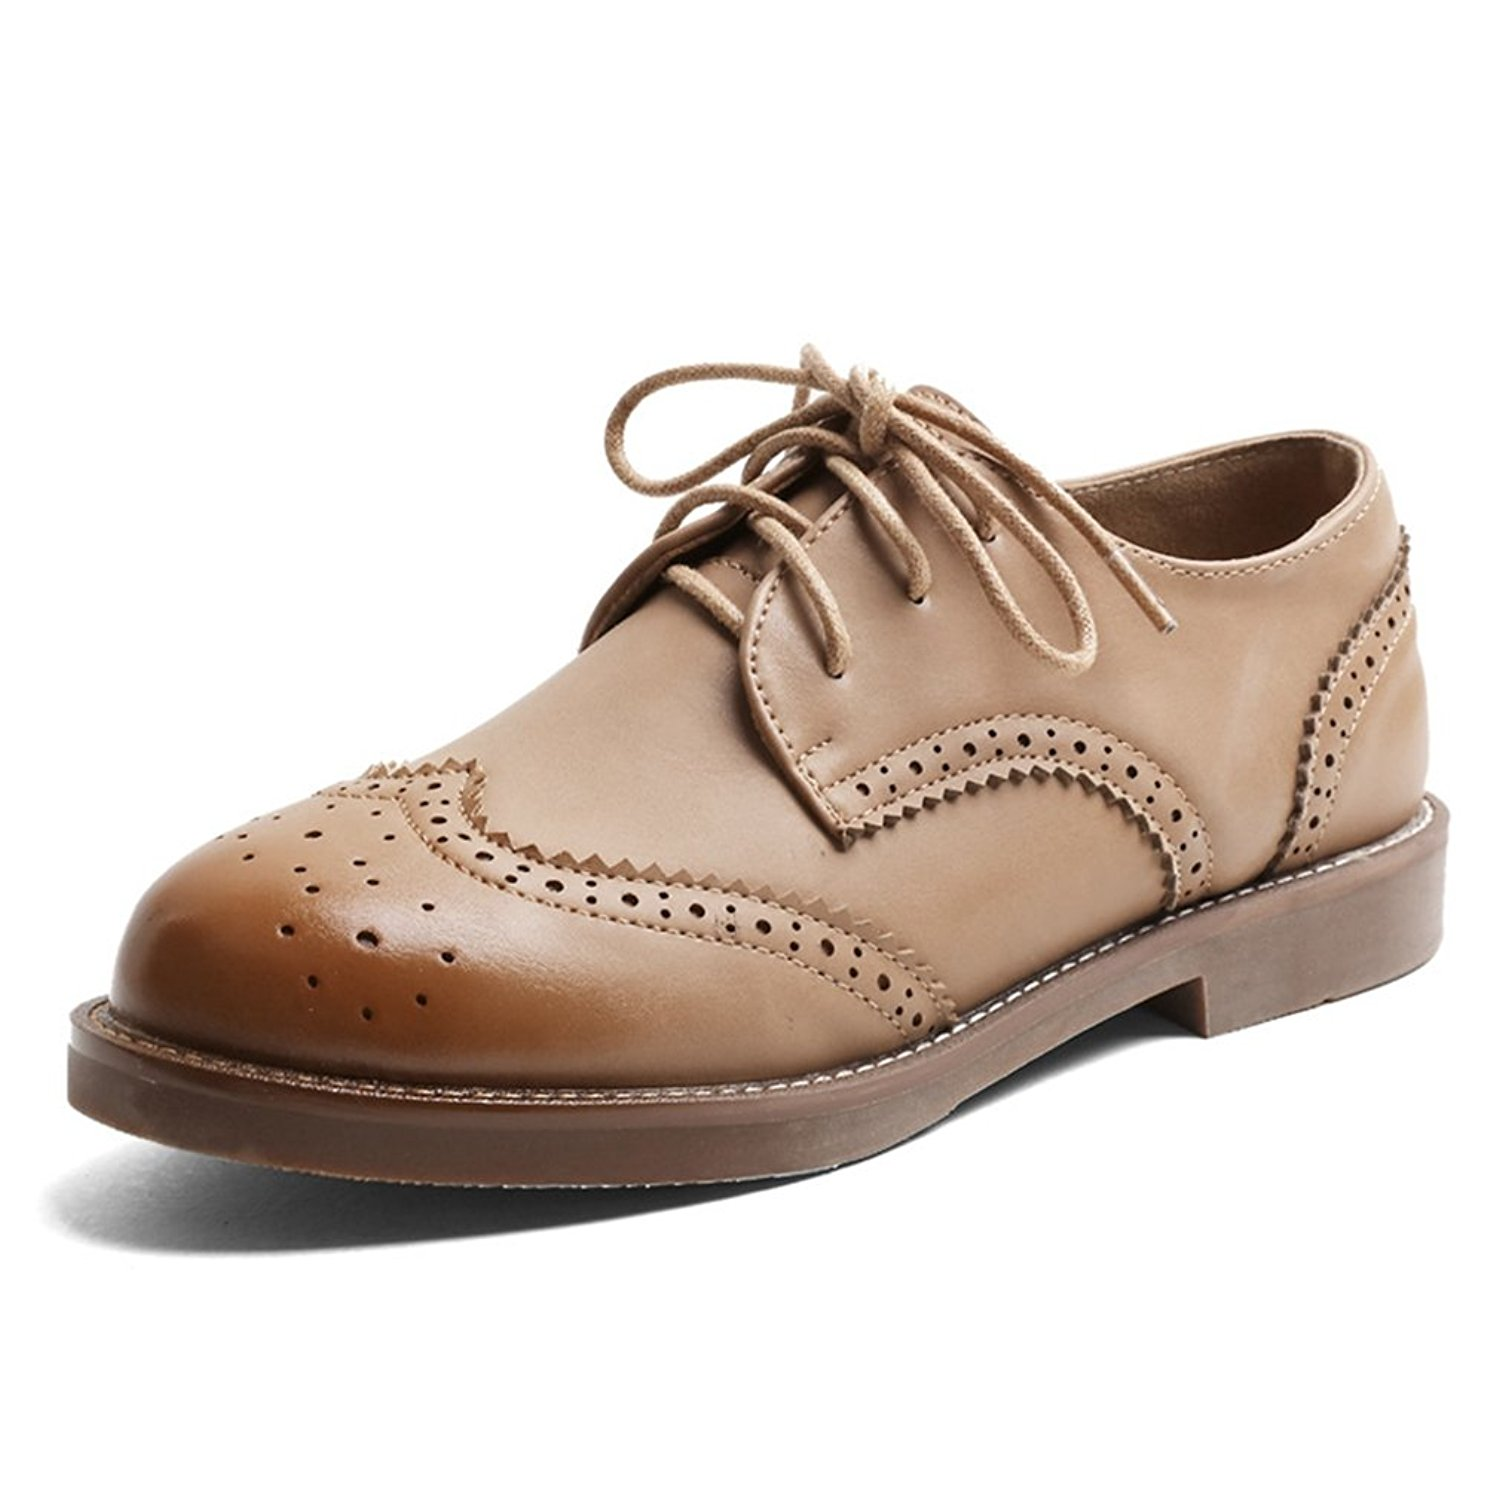 17079e50e1b090 Get Quotations · Hoxekle Fashion Womens Apricot Pure Color Perforated Lace Wingtip  Oxford Shoes Vintage Oxford Shoes